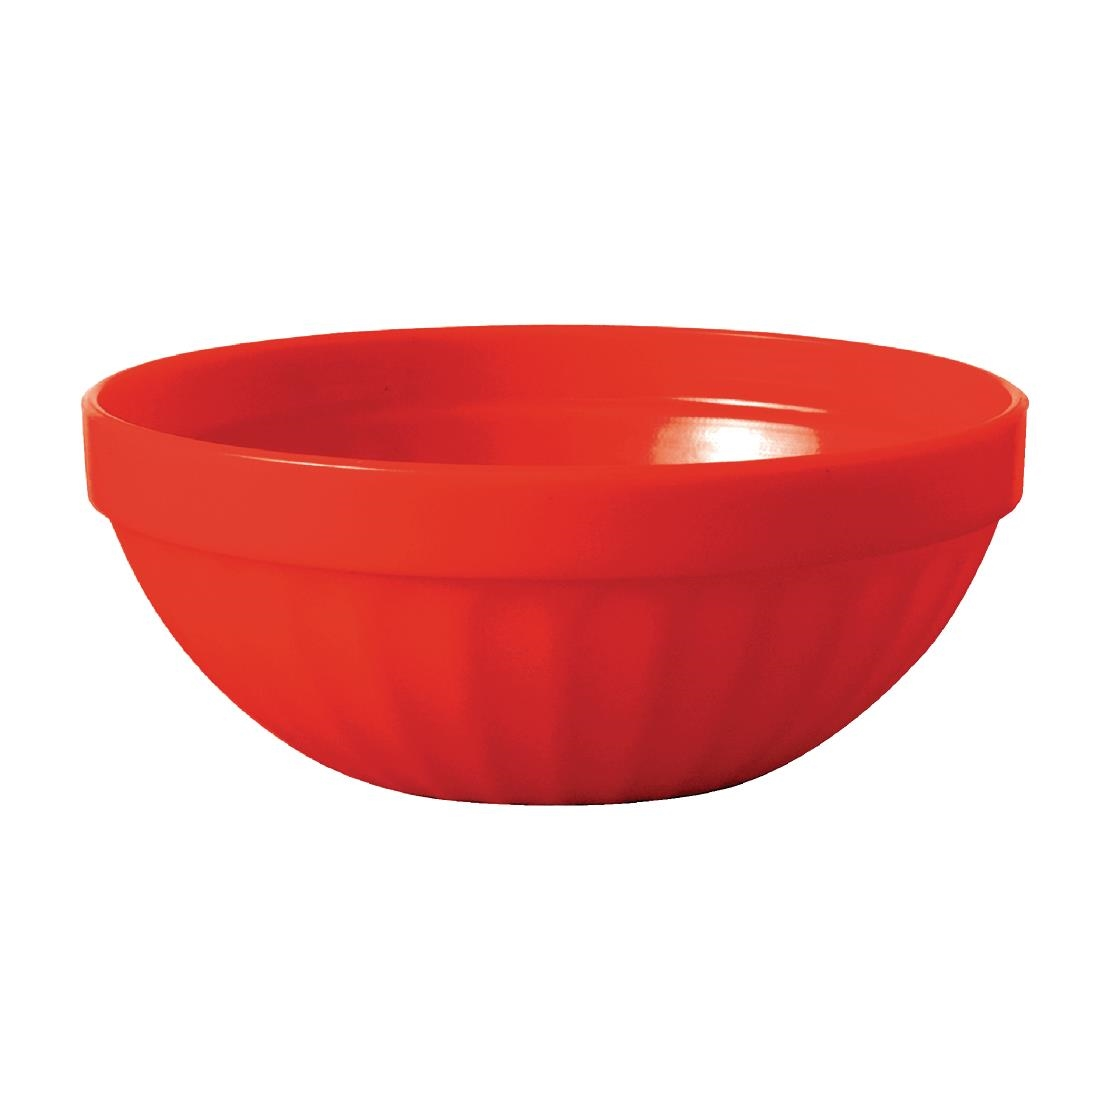 Small Bowl - Red